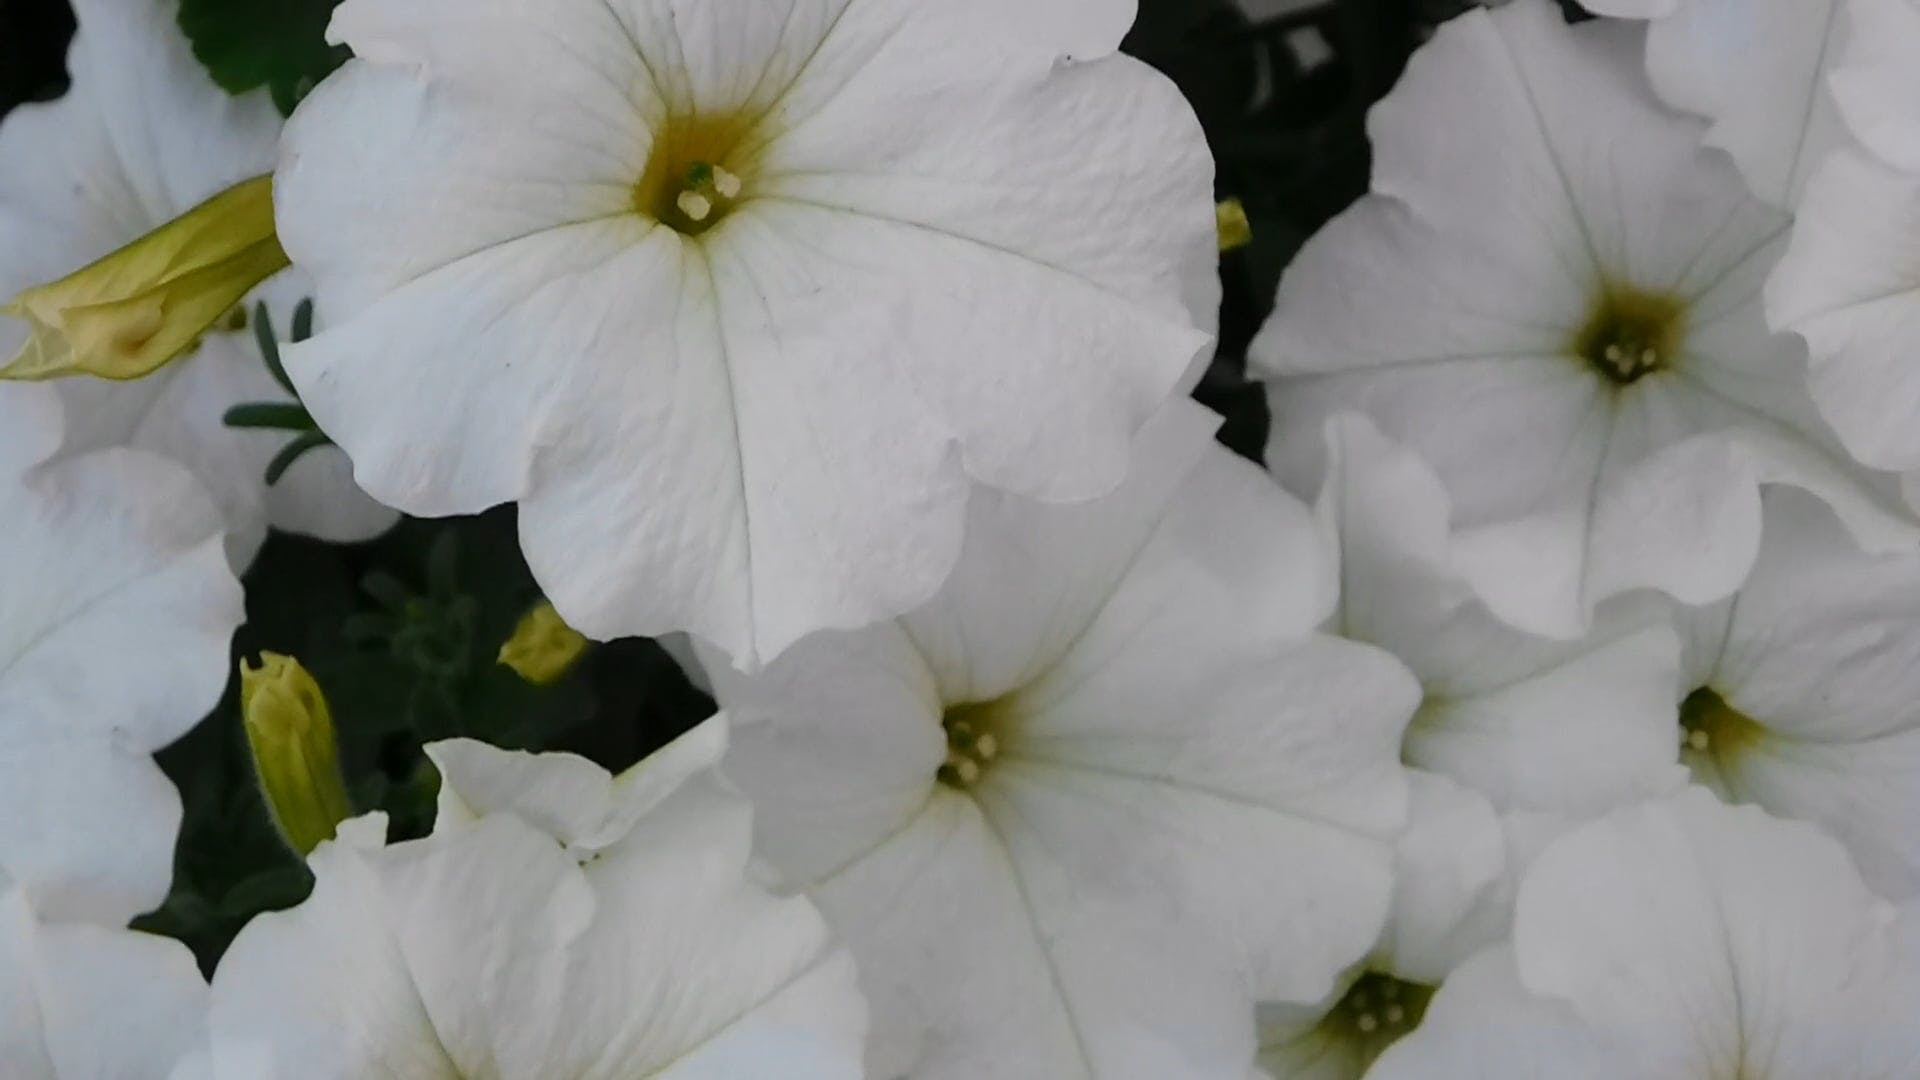 Lovely White Blooms